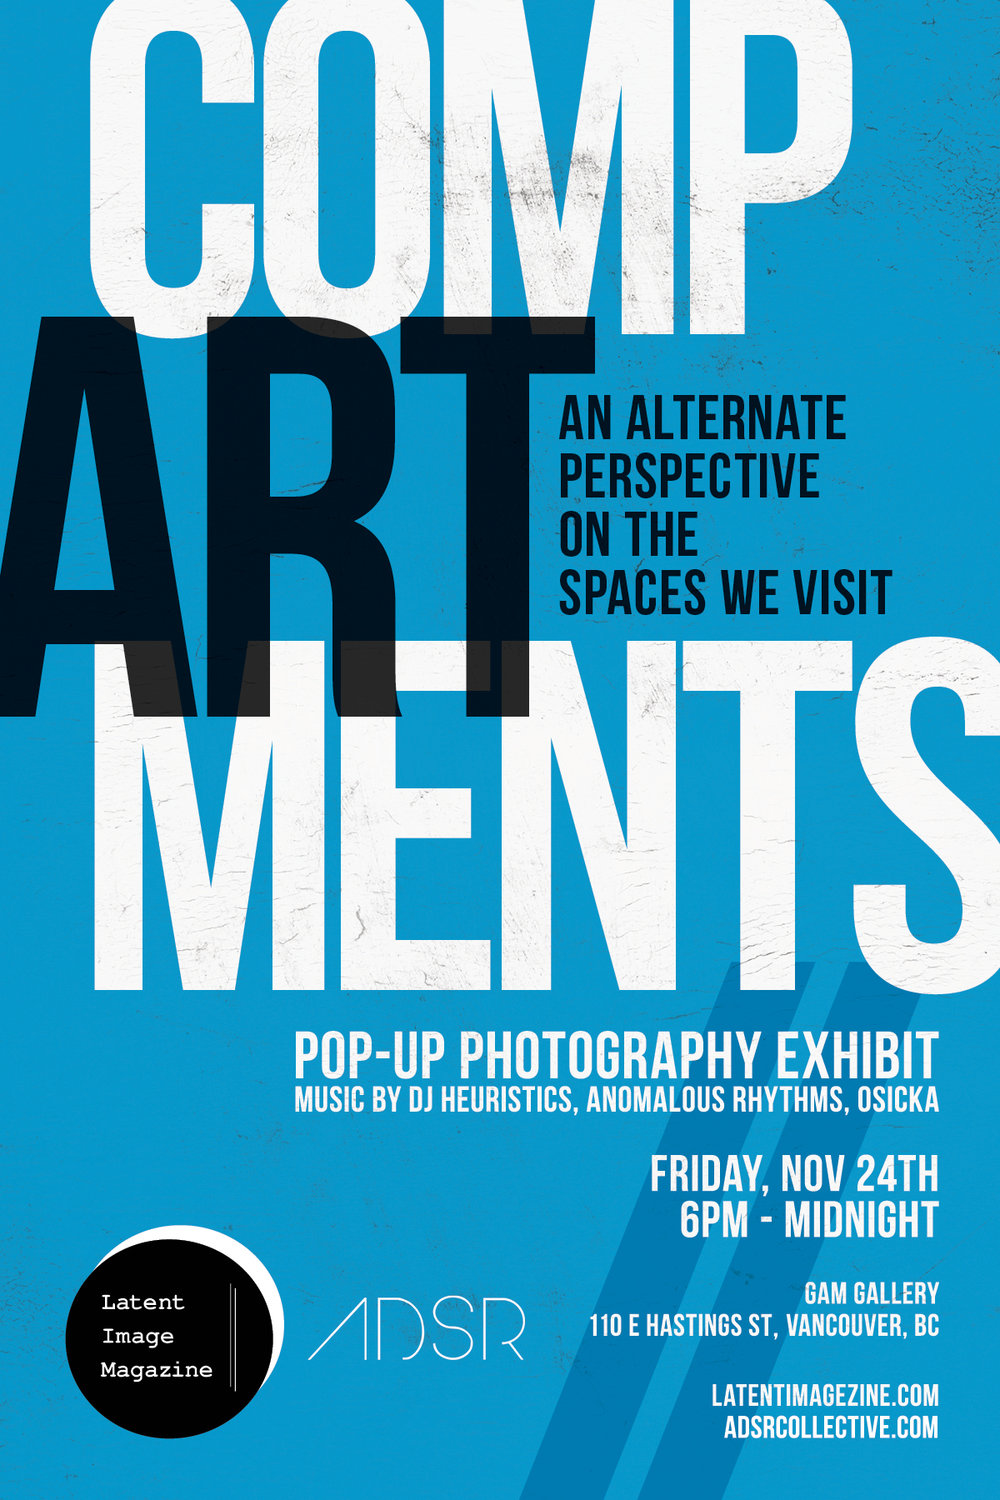 Friday November 24th @ The Gam Gallery  110 E Hastings Street Vancouver BC, Canada